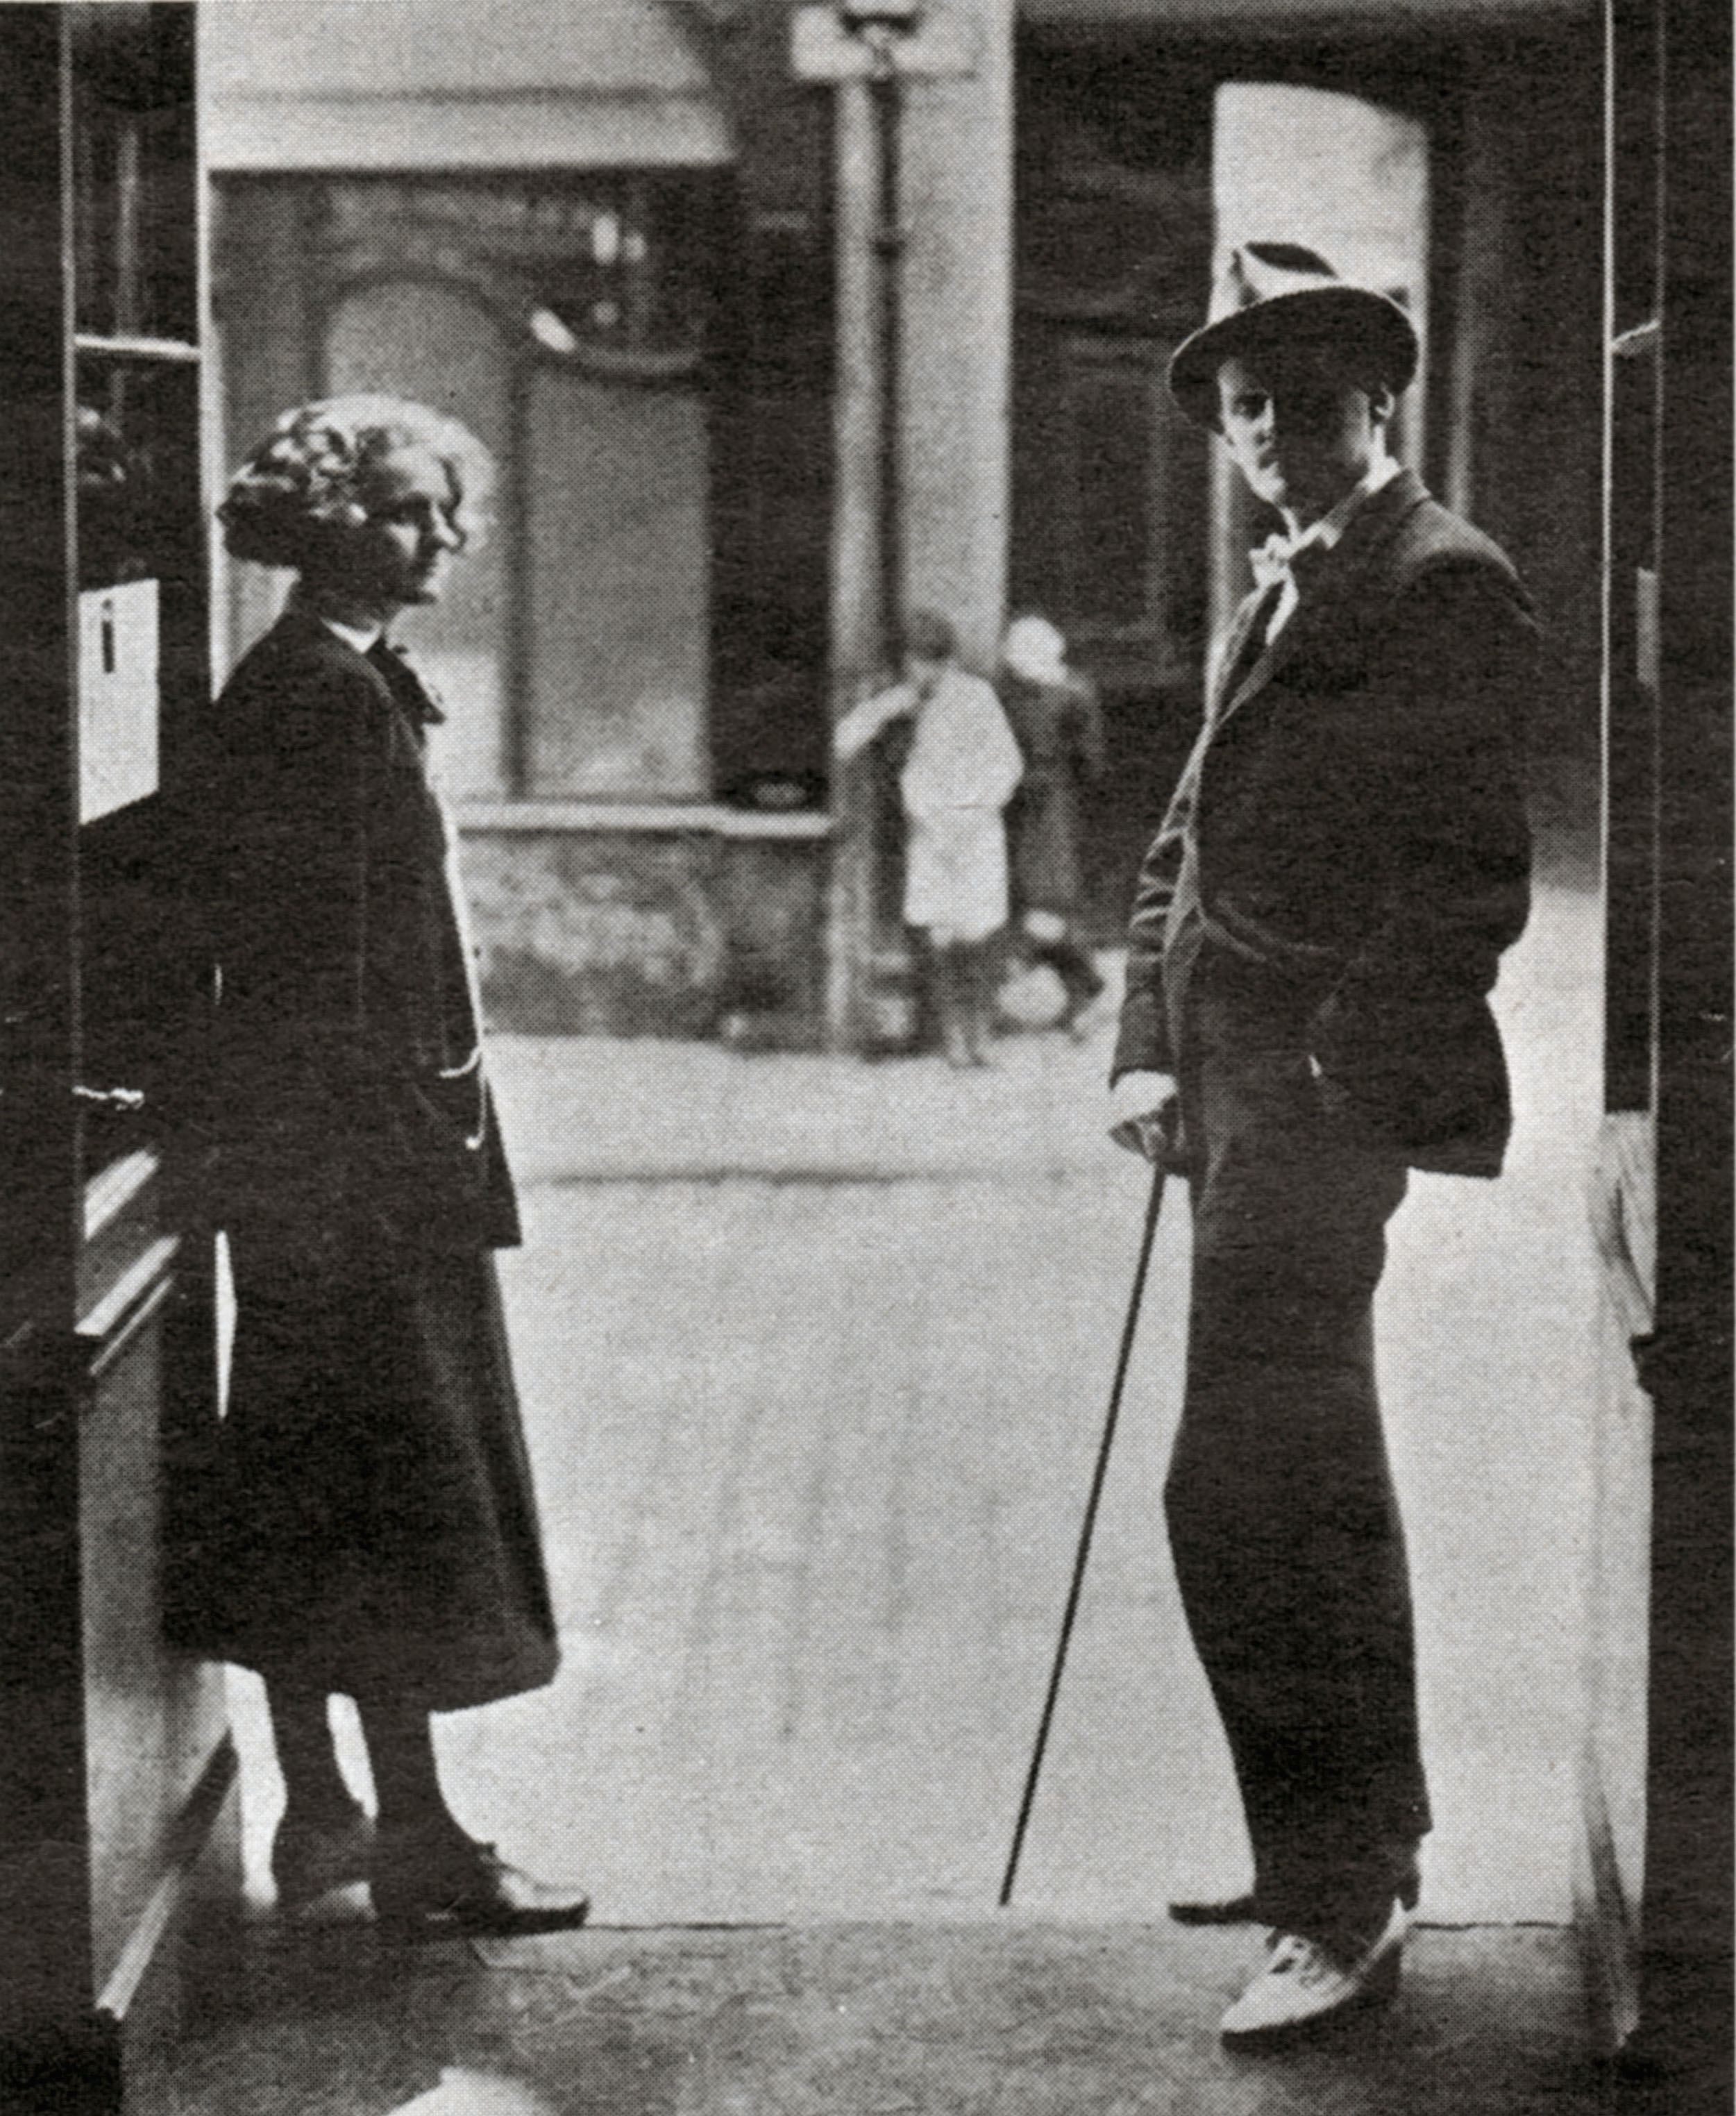 The writer James Joyce 1882-1941 and the American bookseller and publisher Sylvia Beach 1887-1962 in front of her library Shakespeare and Company, rue de l'Odeon, Paris, 1922. Anonymous photo in: Life, USA, November 5, 1962.